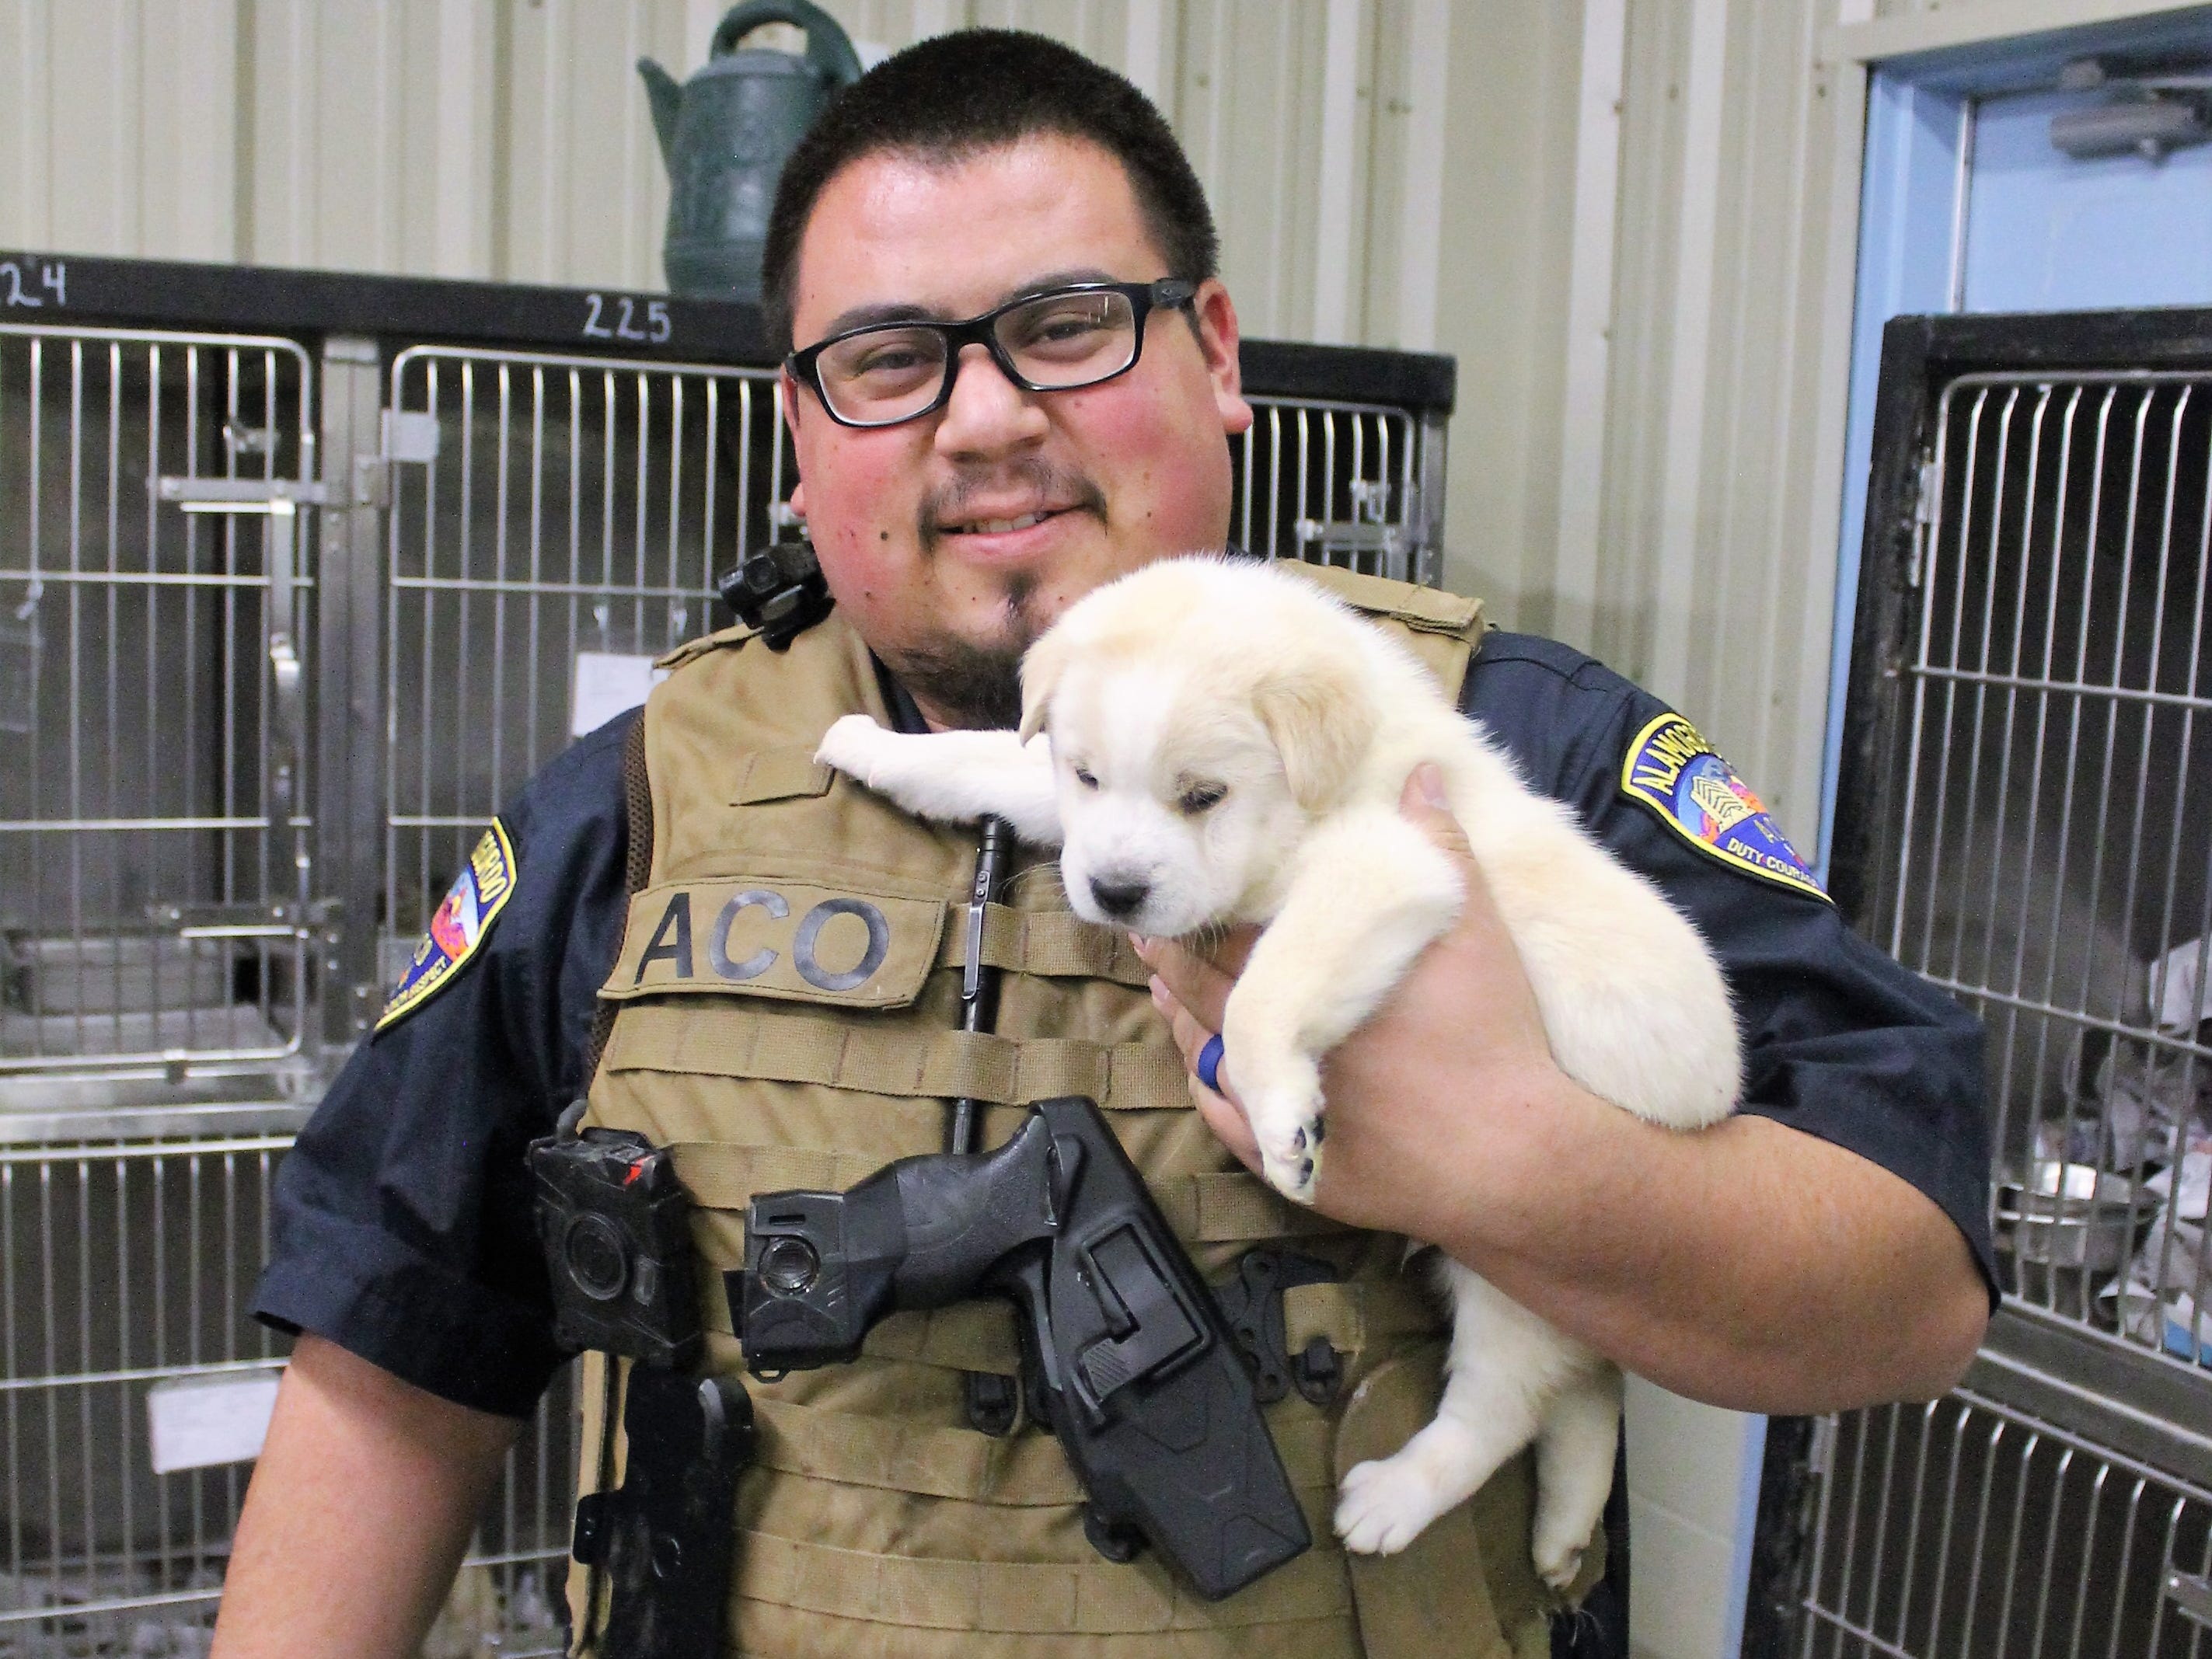 Alamogordo Animal Control Officer Carlos Juarez holds a shepherd mix puppy that is up for adoption at Alamogordo Animal Control.